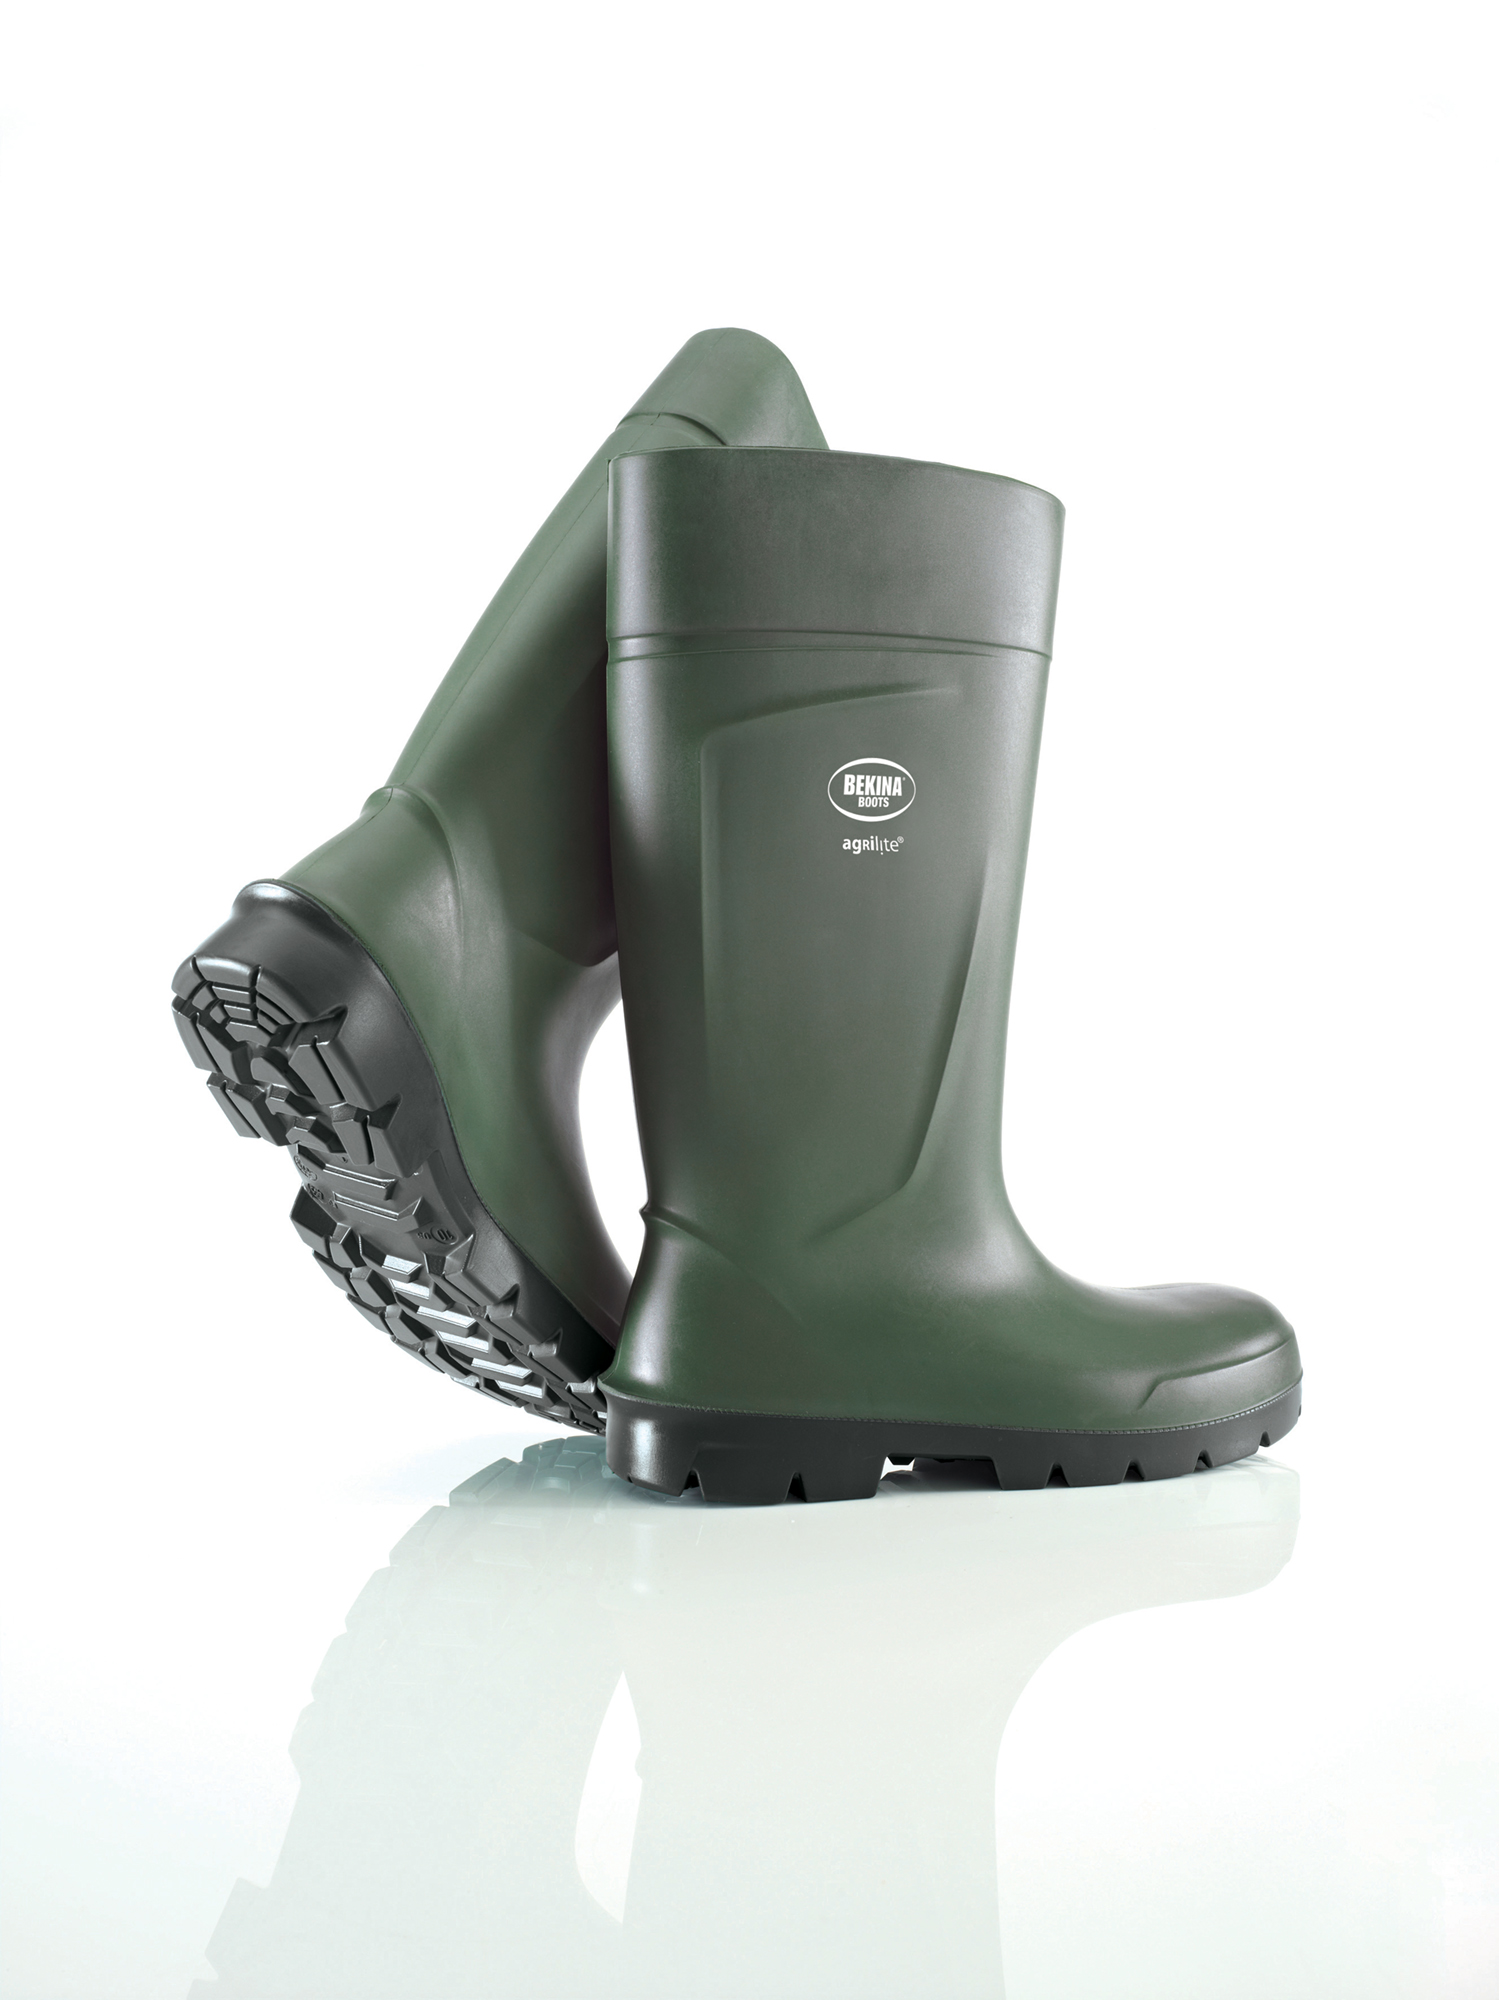 Bekina Agrilite rubber boot (PU) with steel toe cap, olive green, size 40